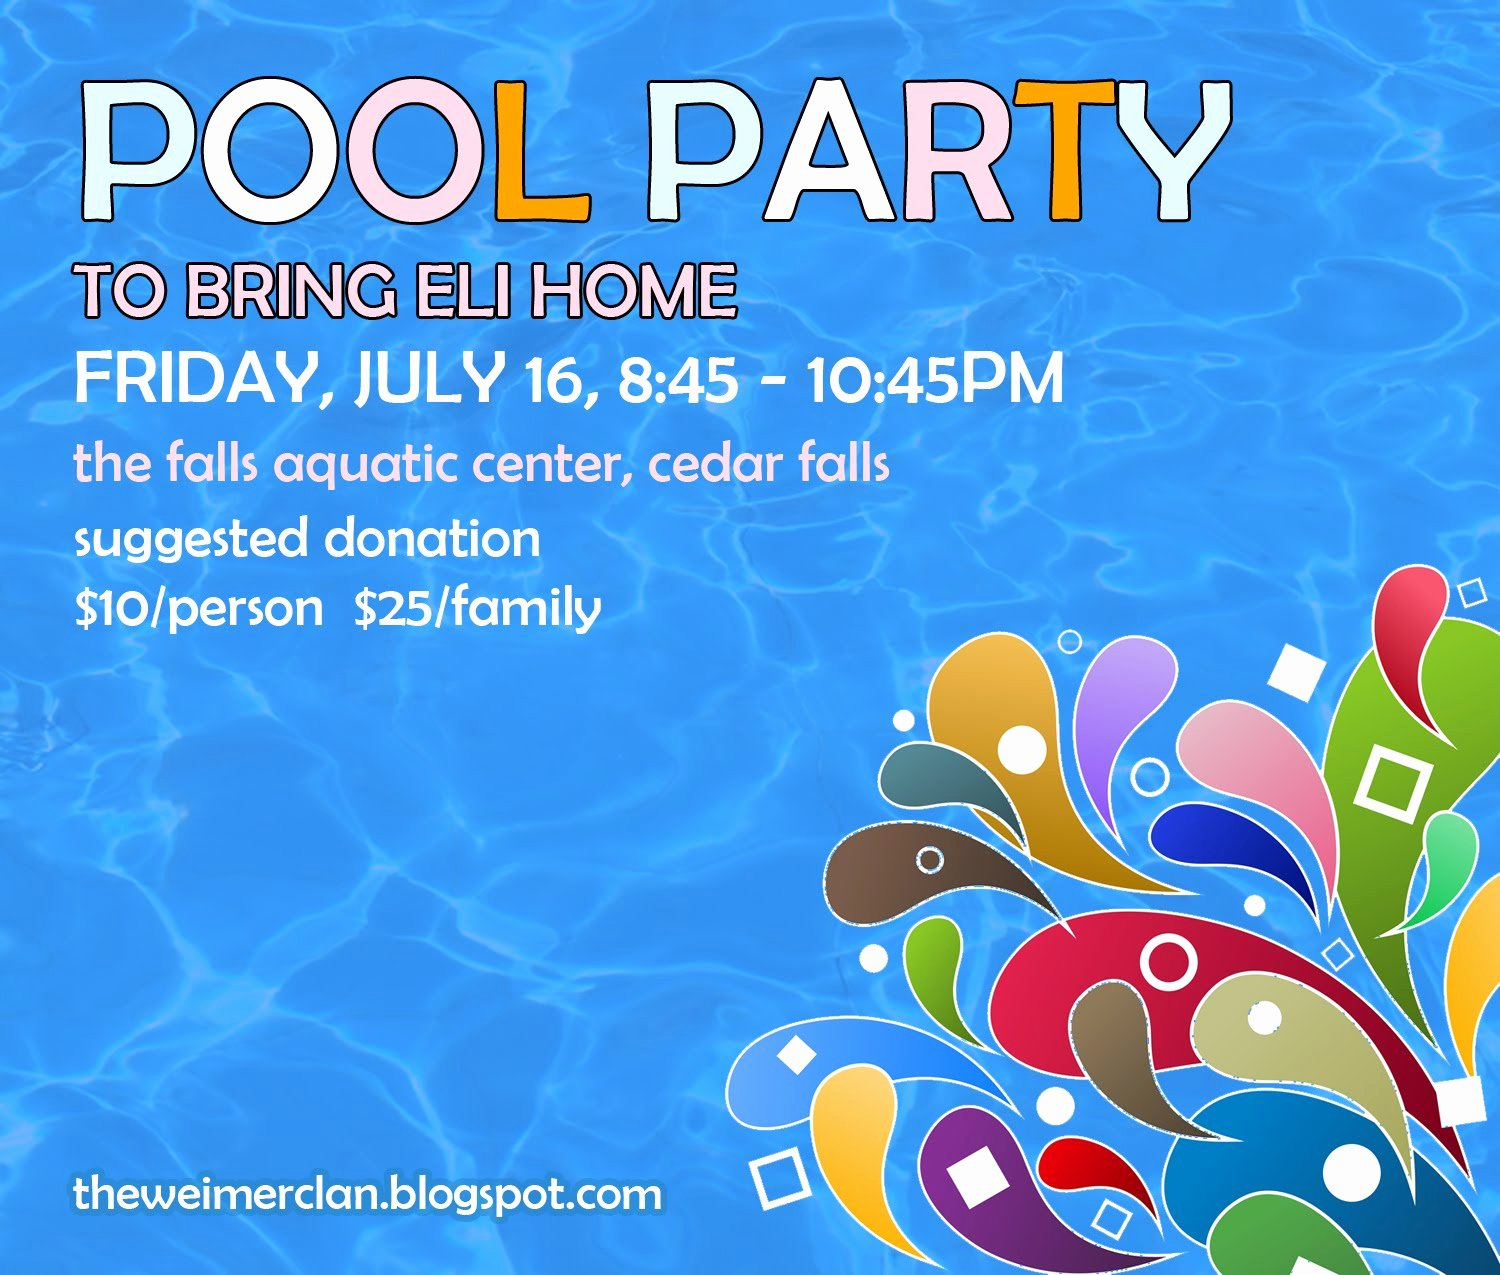 Pool Party Flyer Template Lovely Bring Home Eli Save the Date Pool Party